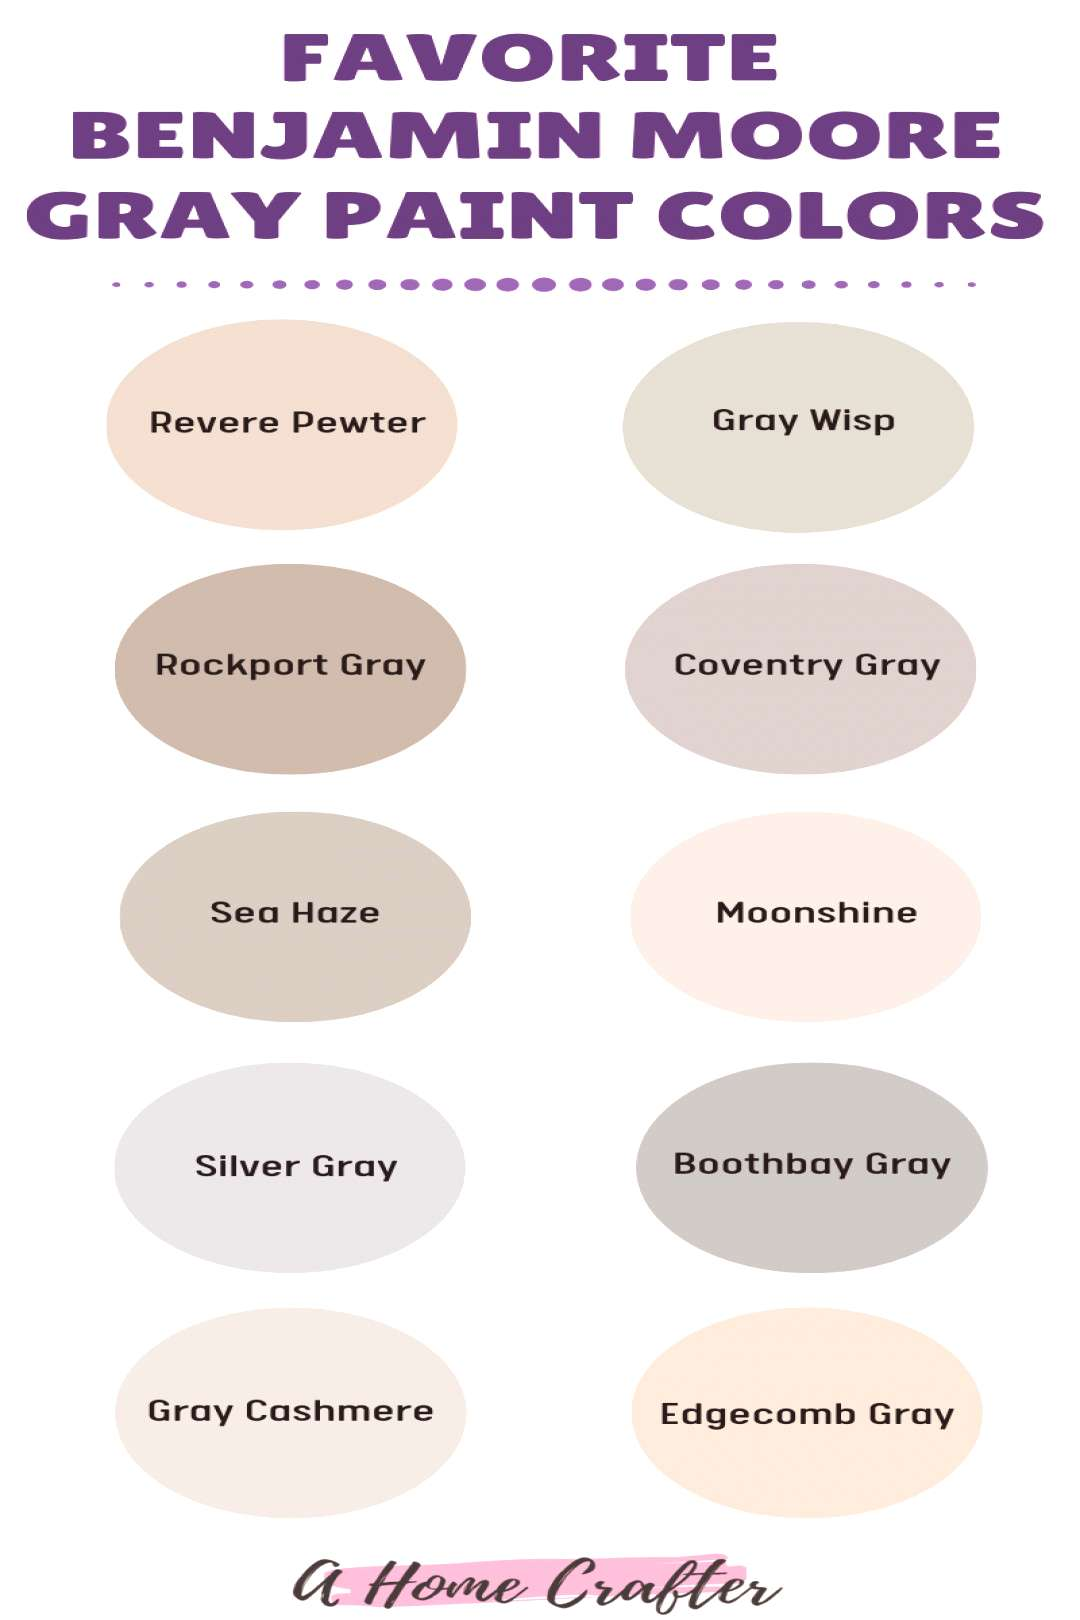 My Favorite Benjamin Moore Gray Paint Colors |Revere Pewter| Gray Wisp| Rockport Gray| Coventry Gra